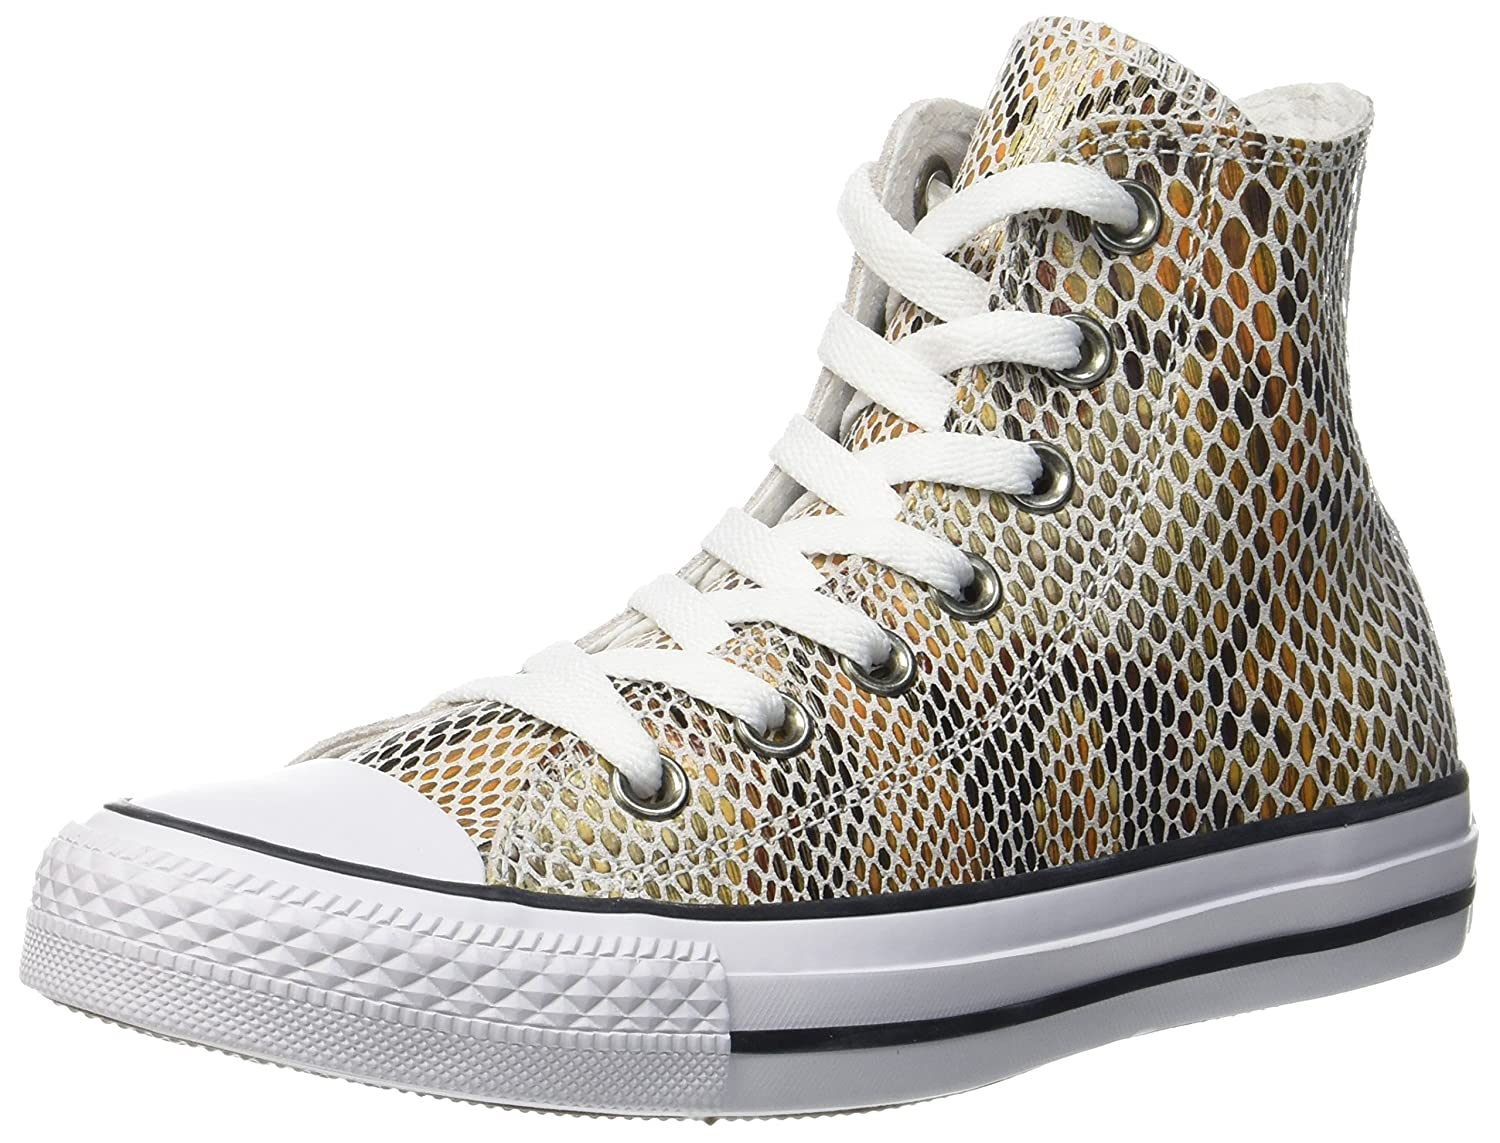 Converse CTAS Hi Natural/Black/White, Zapatillas Altas Unisex Adulto